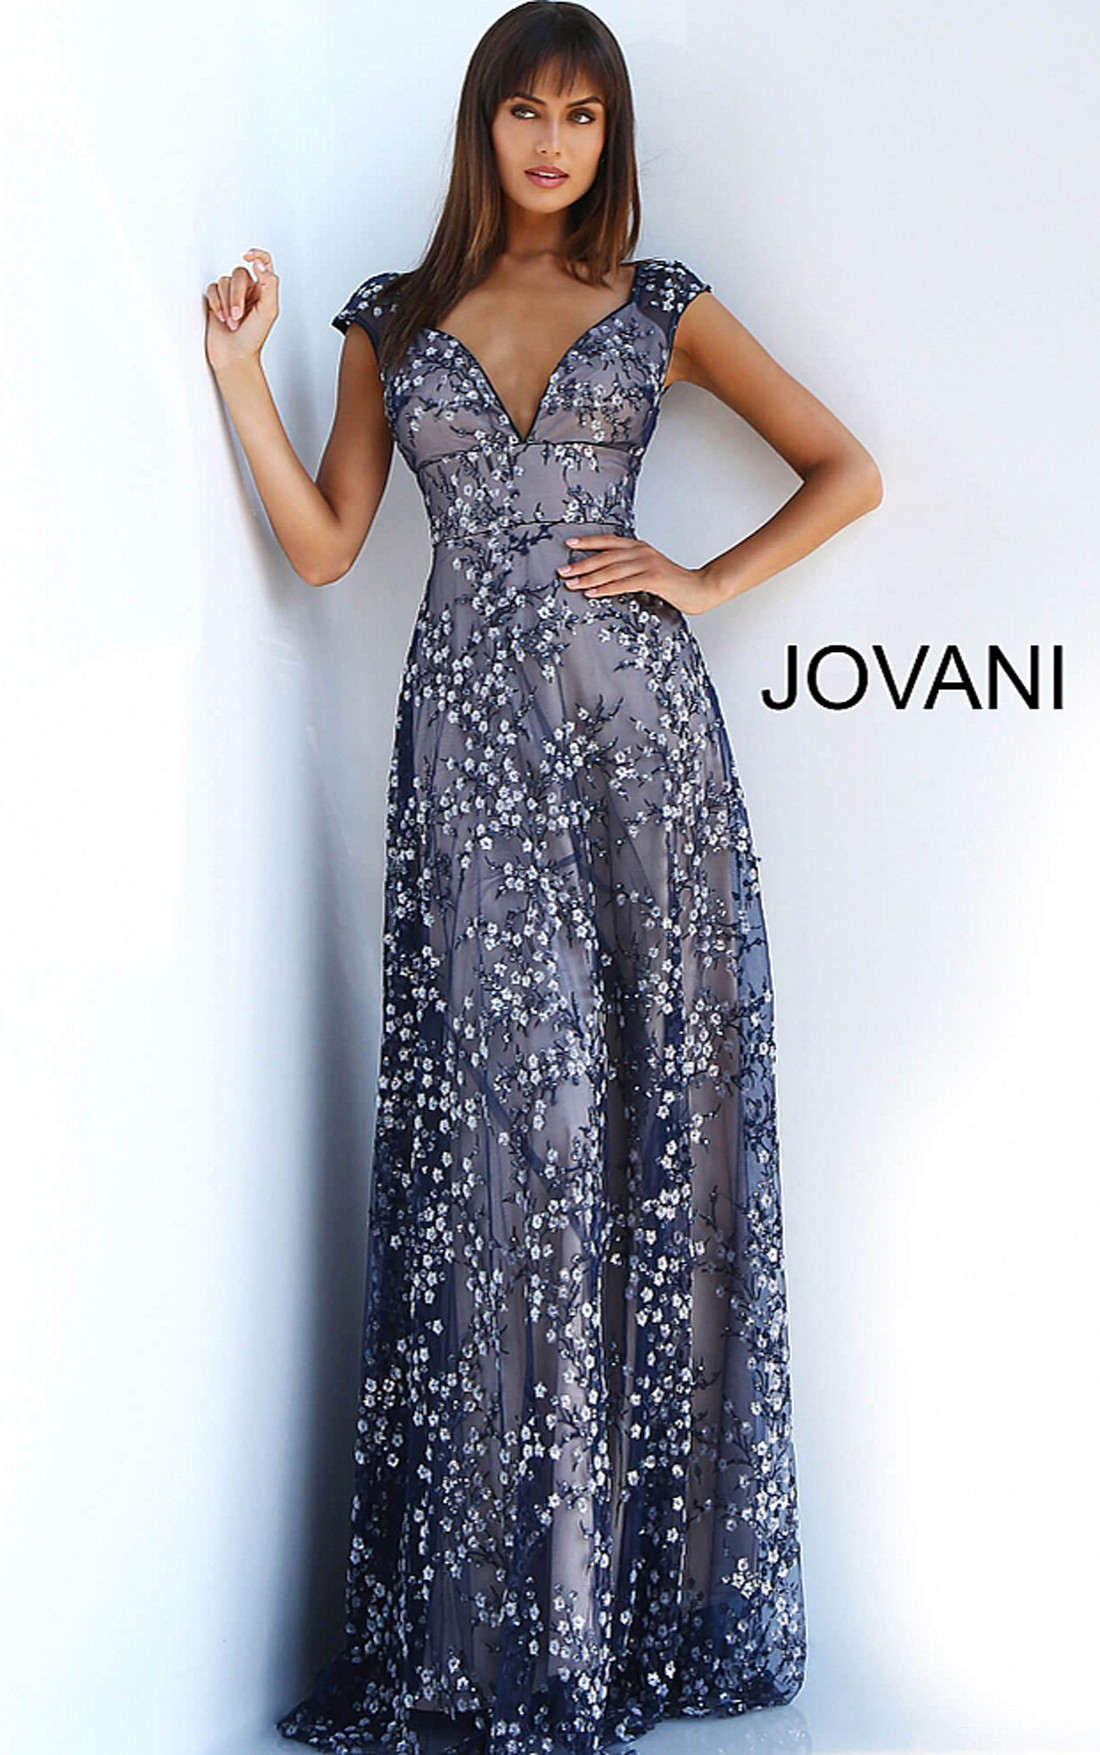 Jovani - Navy Floral Embellished Dress (59597)